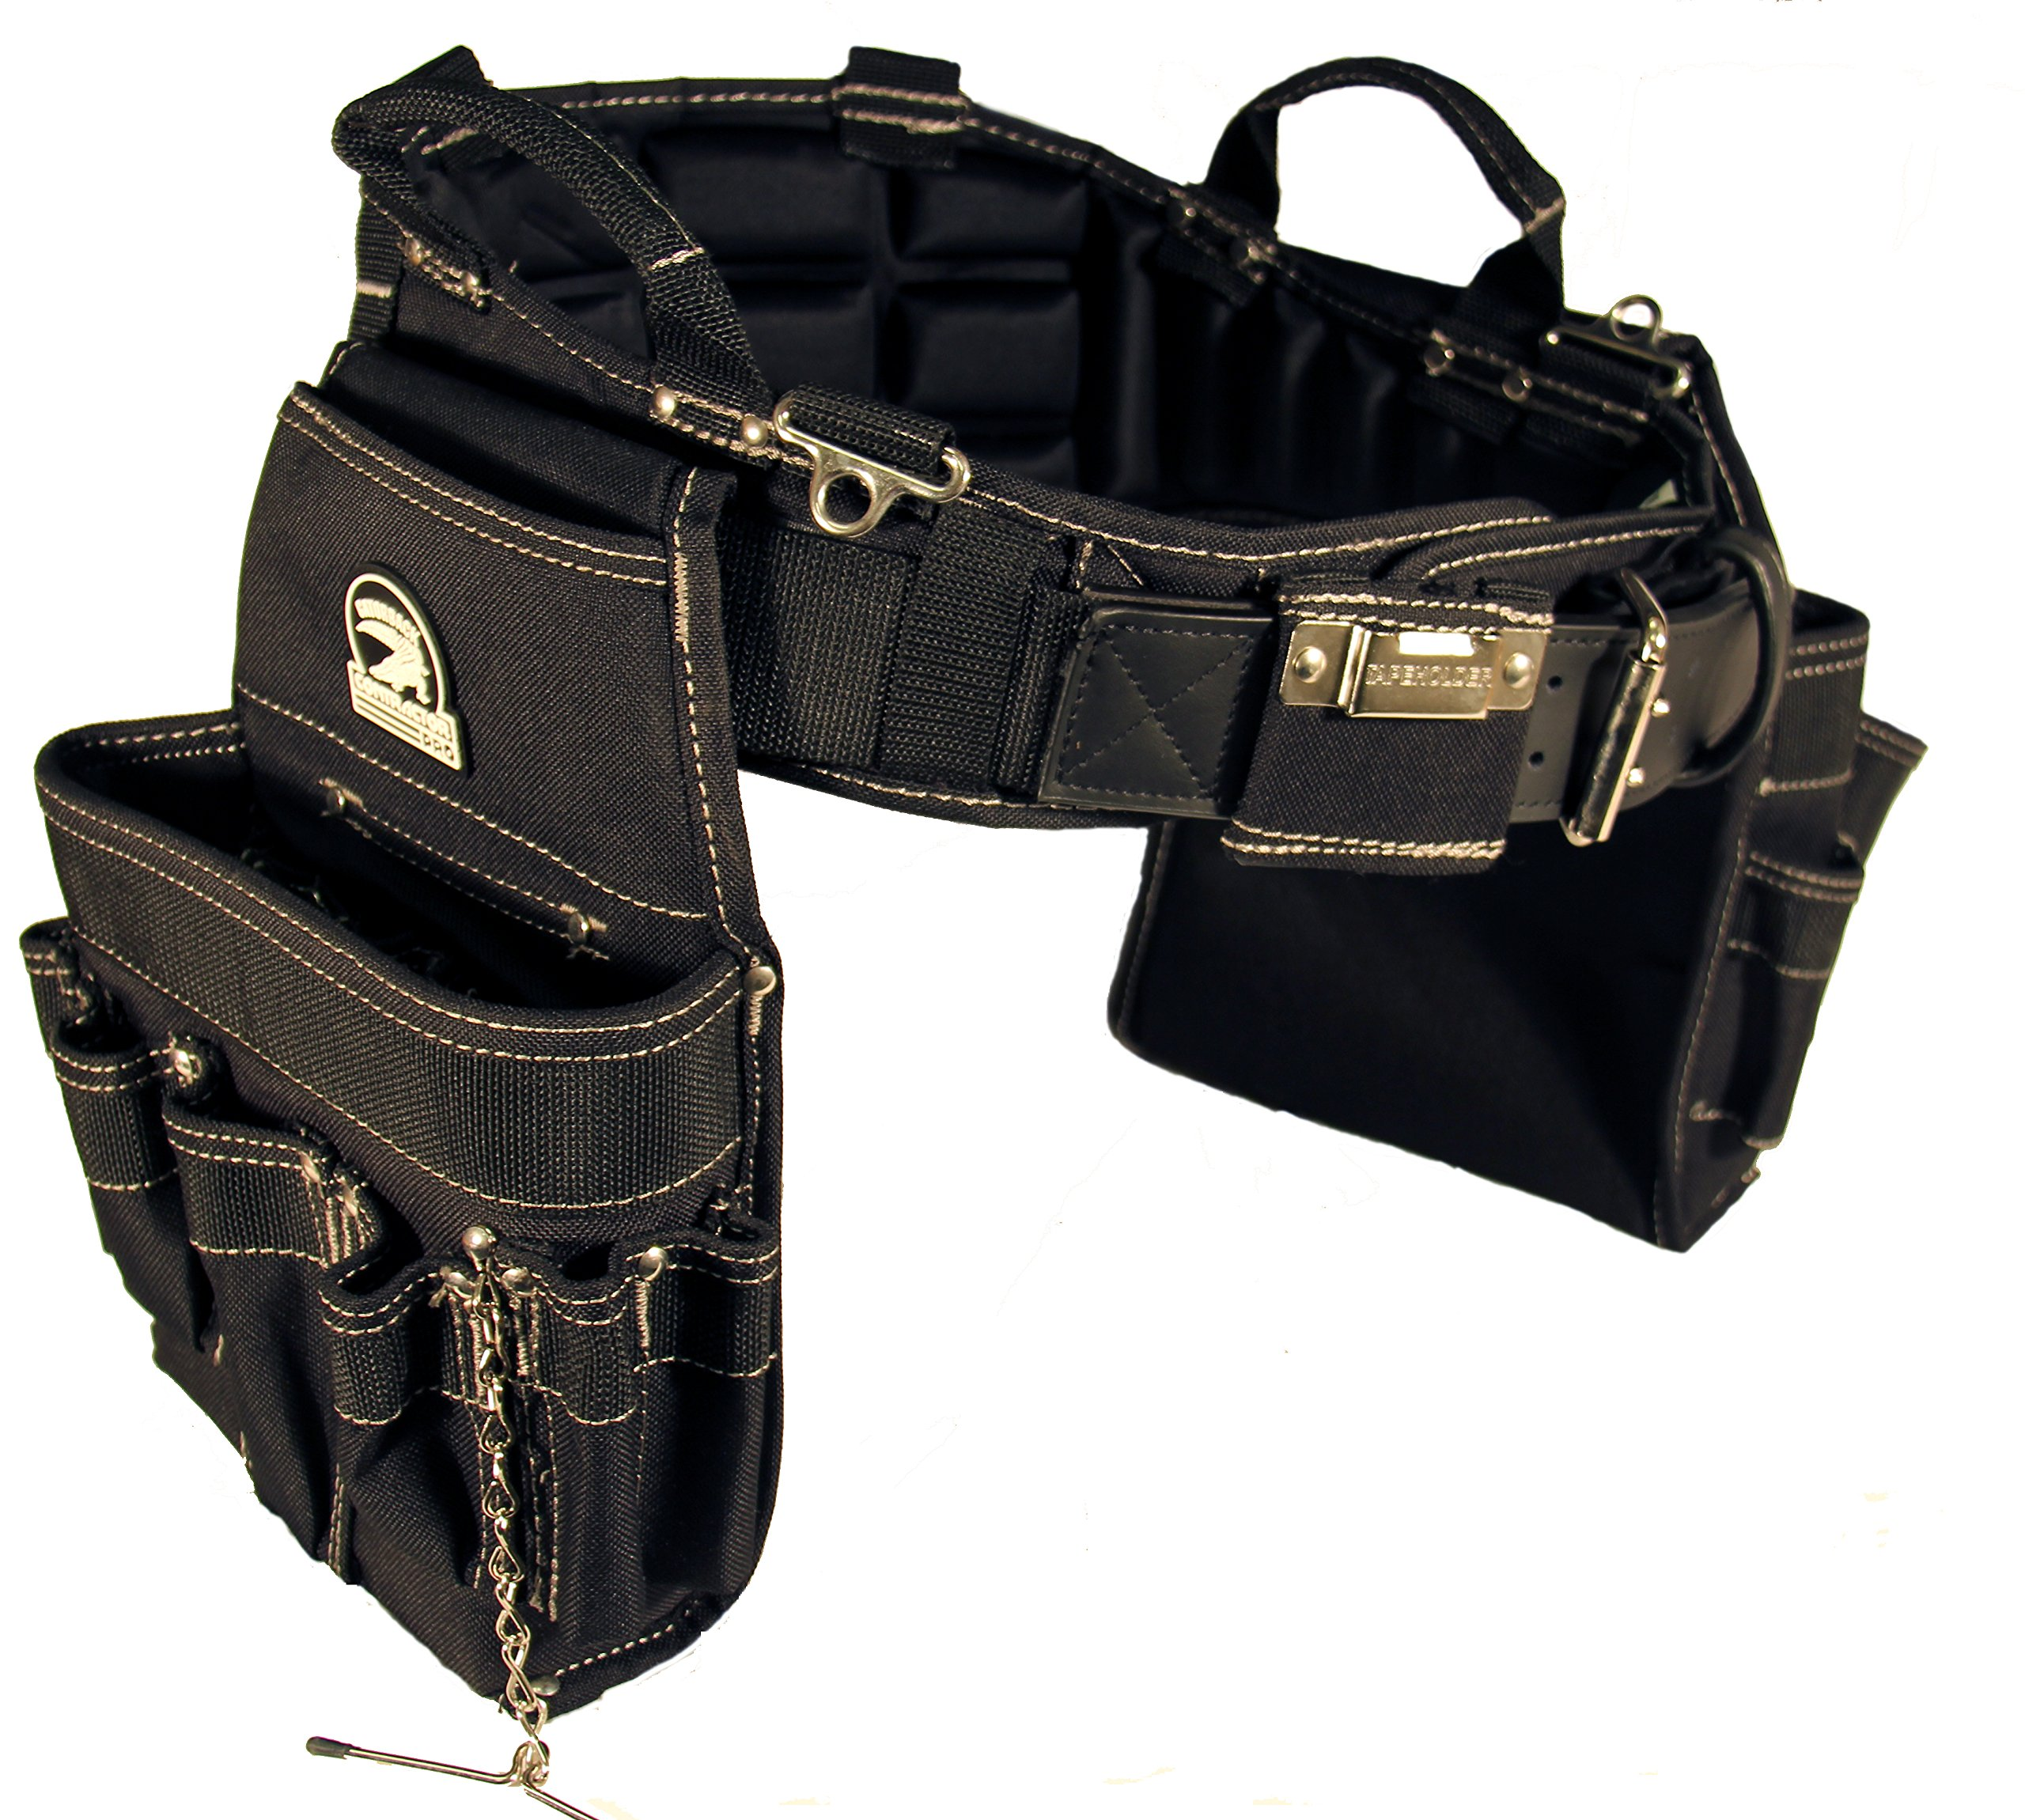 Gatorback B240 Electrician's Combo With Pro-Comfort Back Support Belt. Heavy Duty Work Belt (Medium 31-35 Inches) by Gatorback